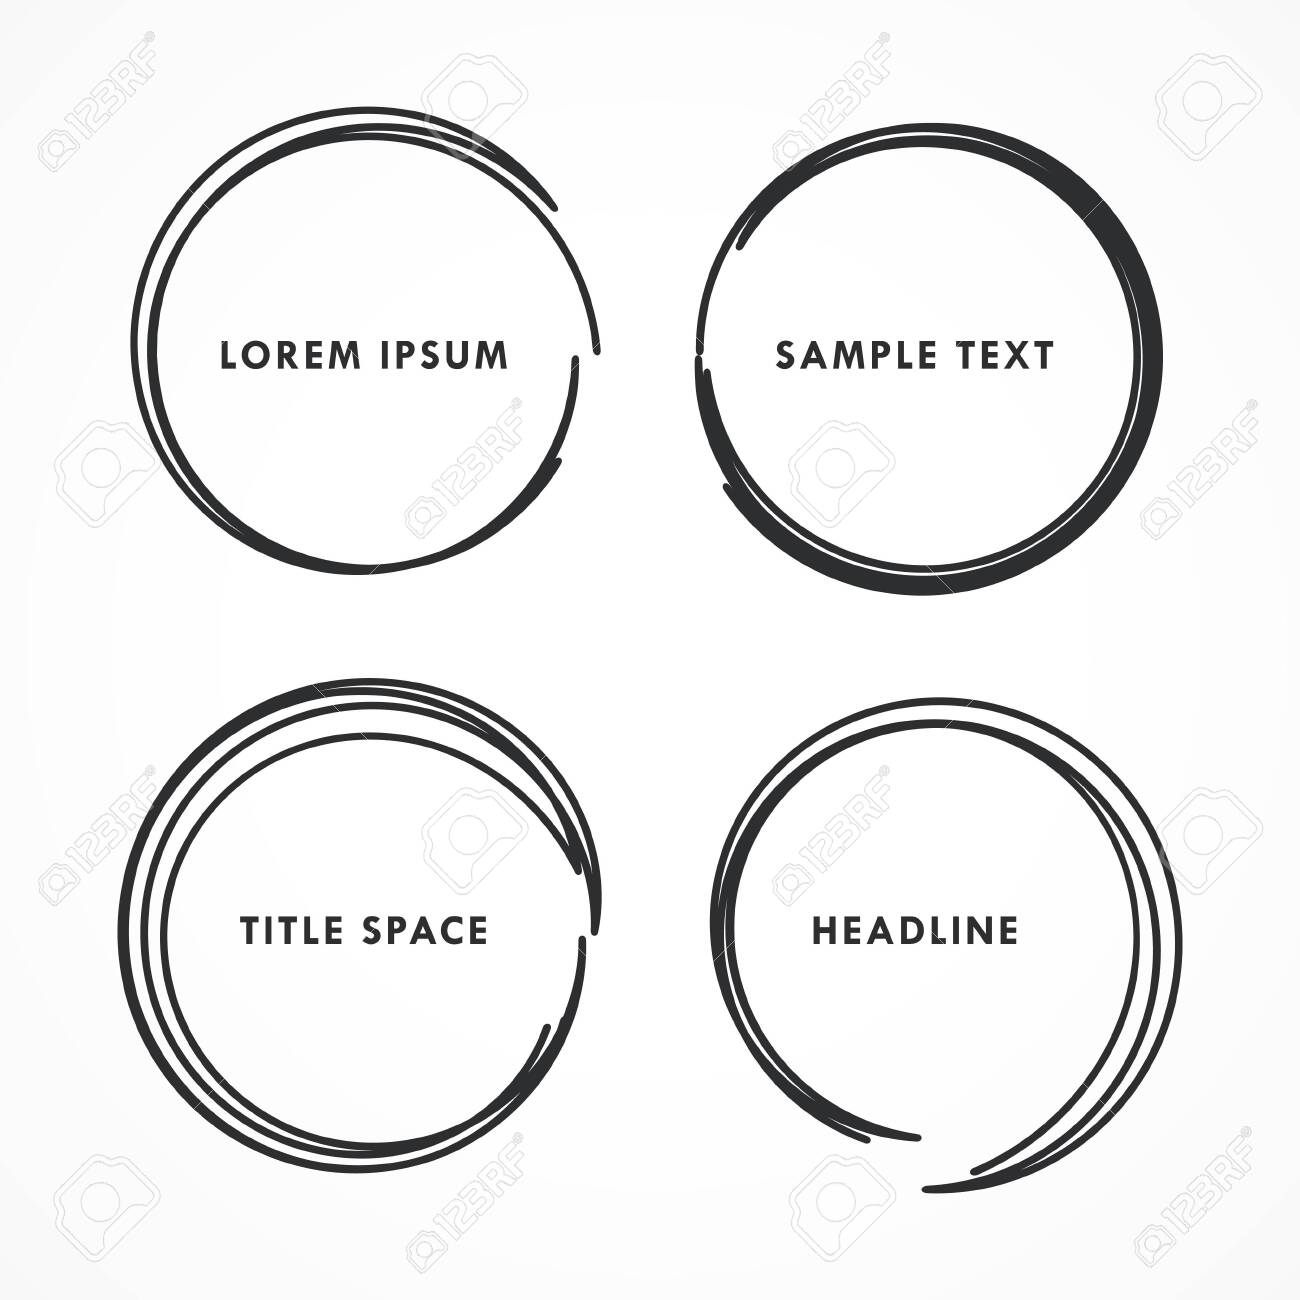 four abstract hand drawn circle frames - 148921467